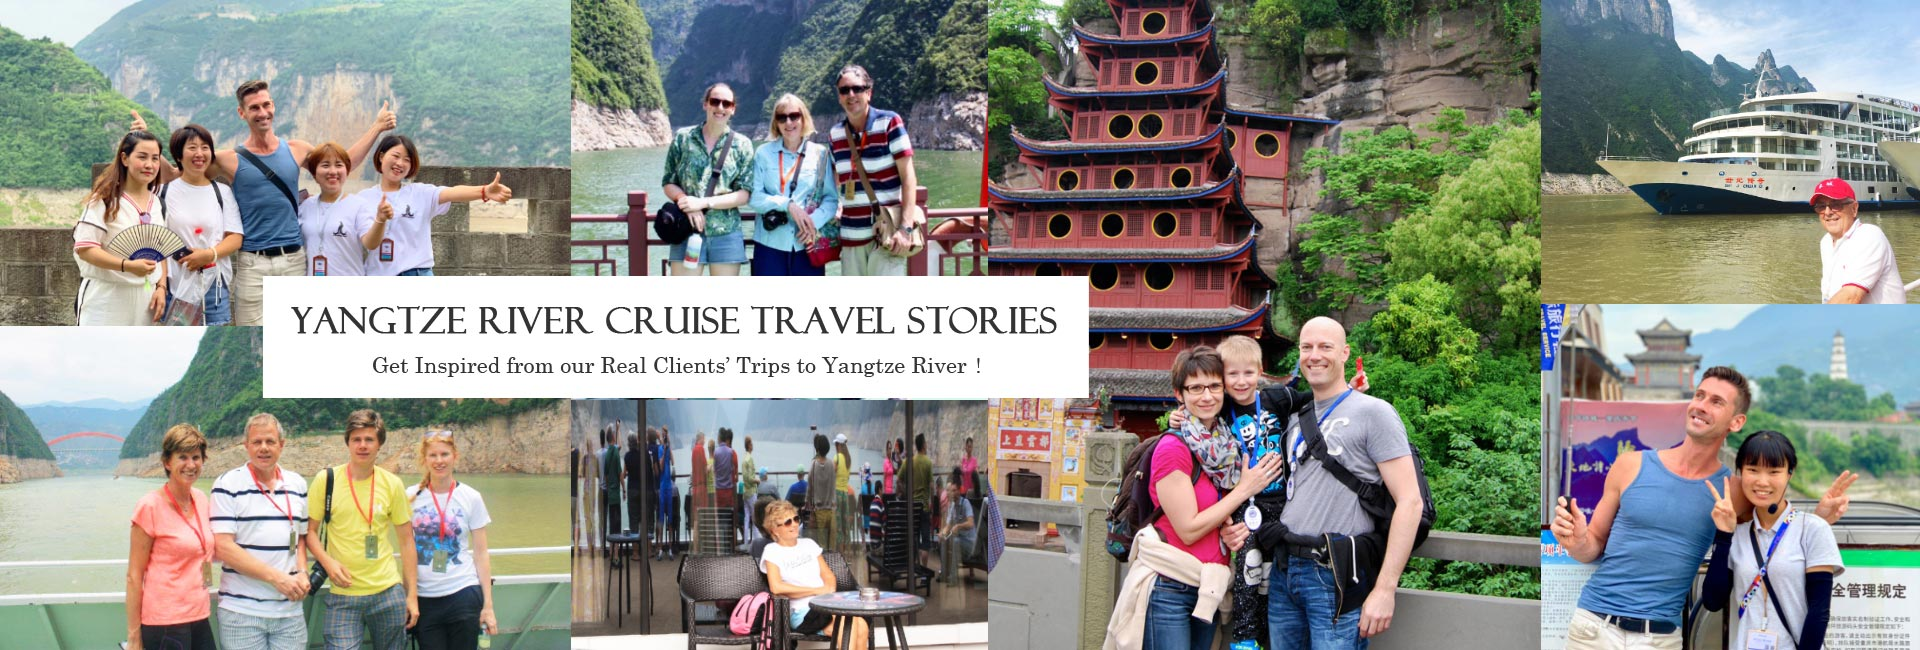 Yangtze River Cruise Travel Stories